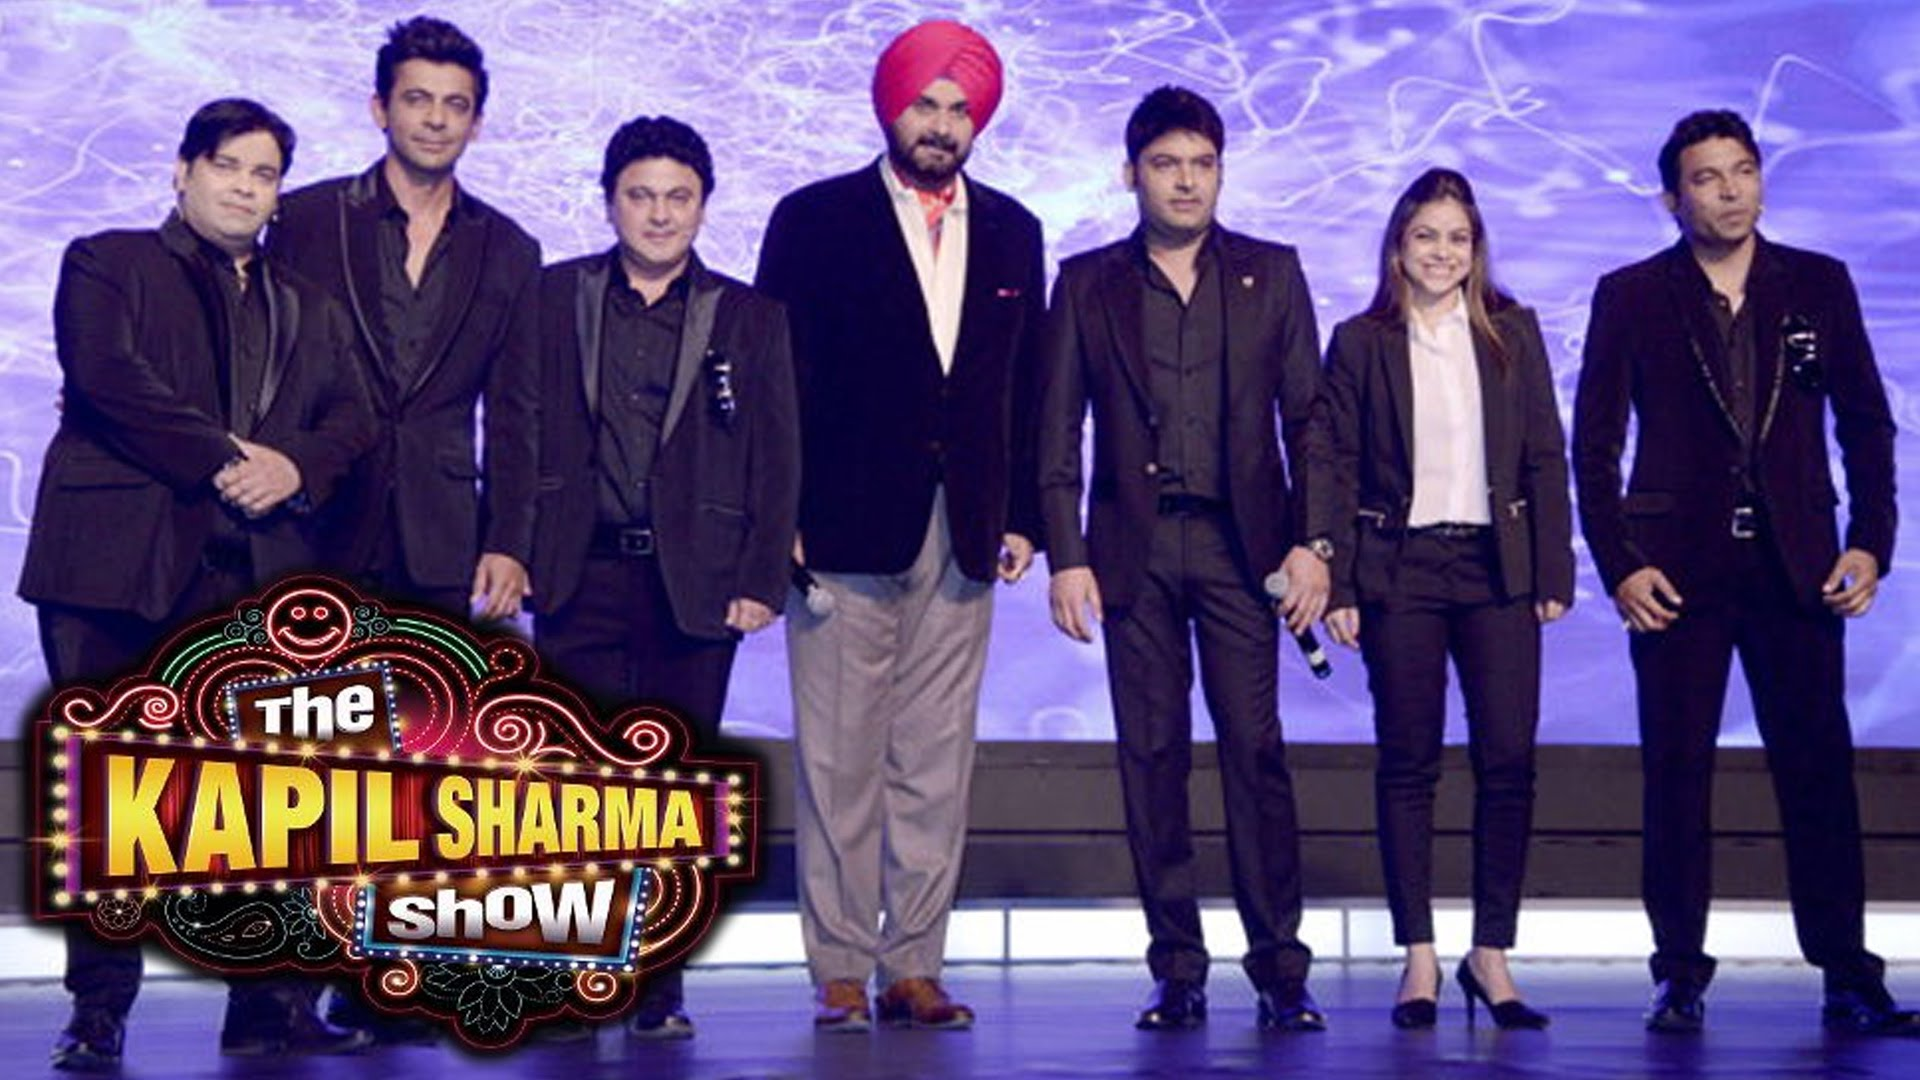 The-Kapil-Sharma-Show-Episode